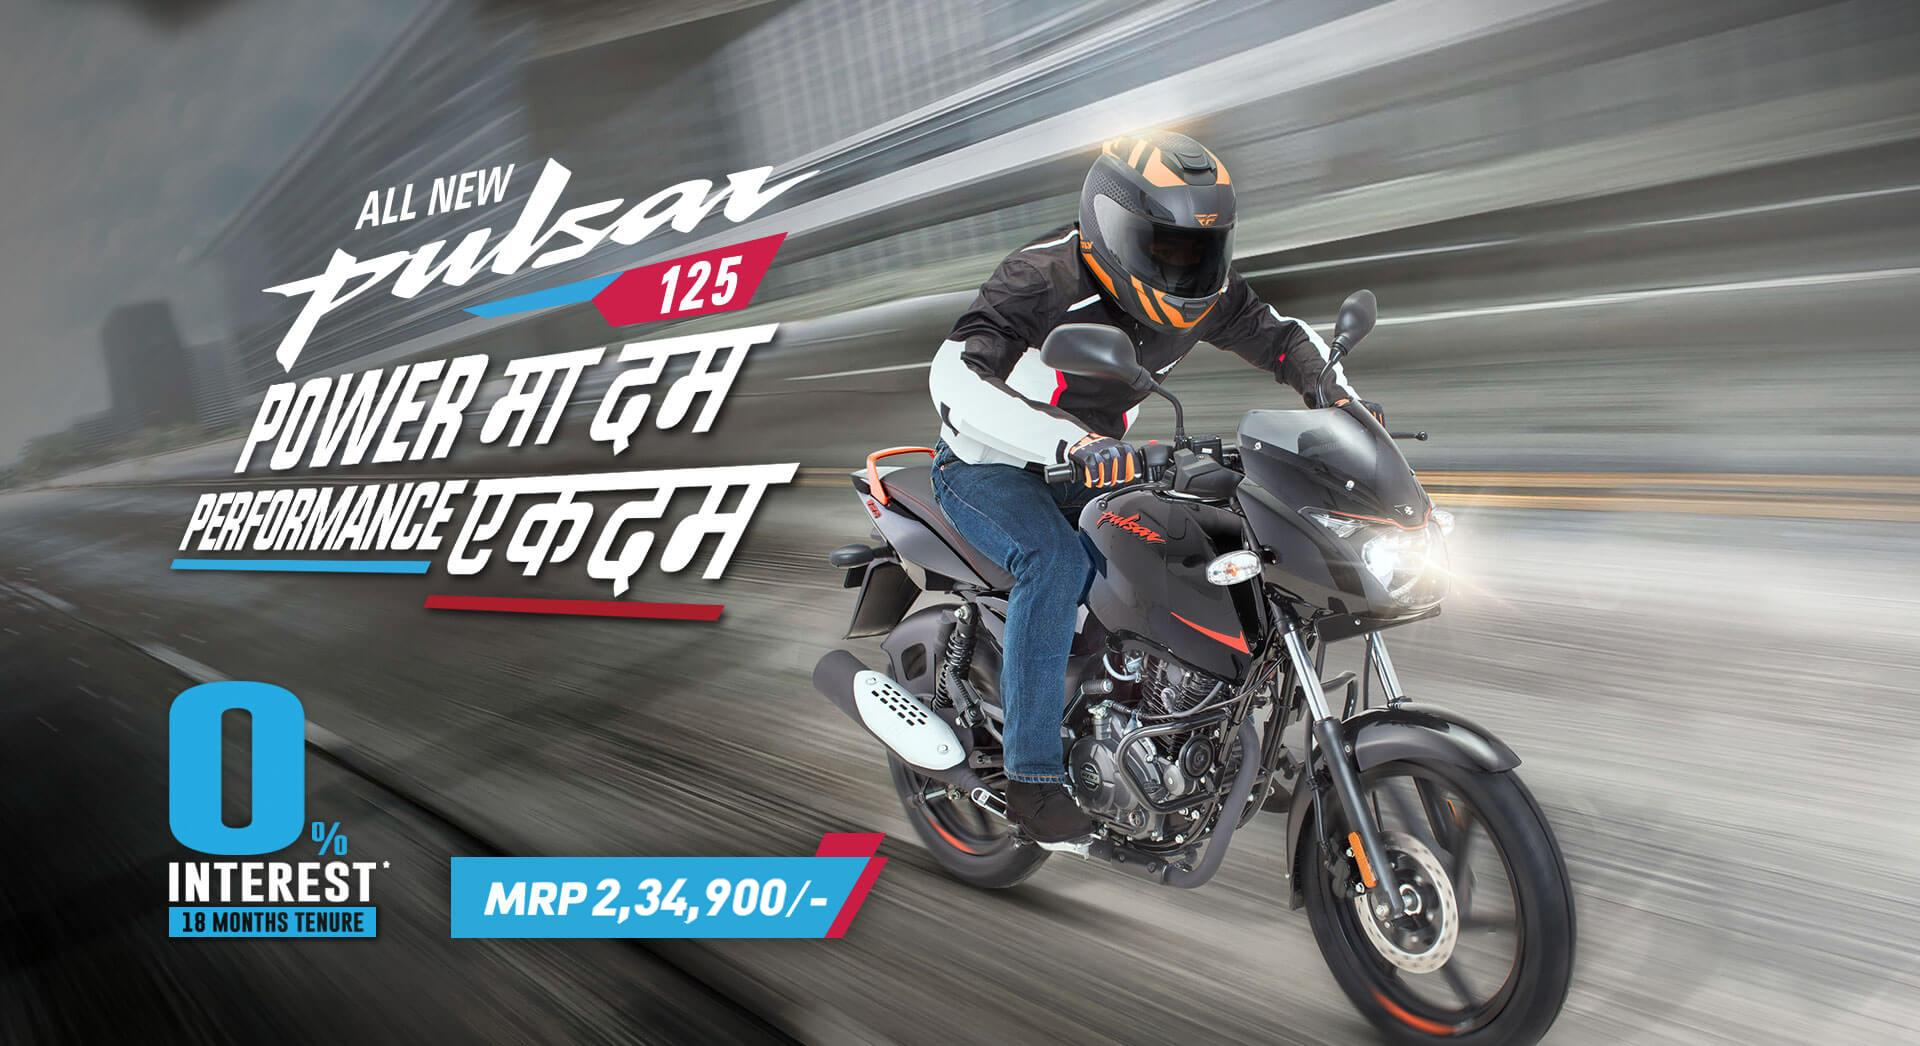 Bajaj Pulsar 125 website banner